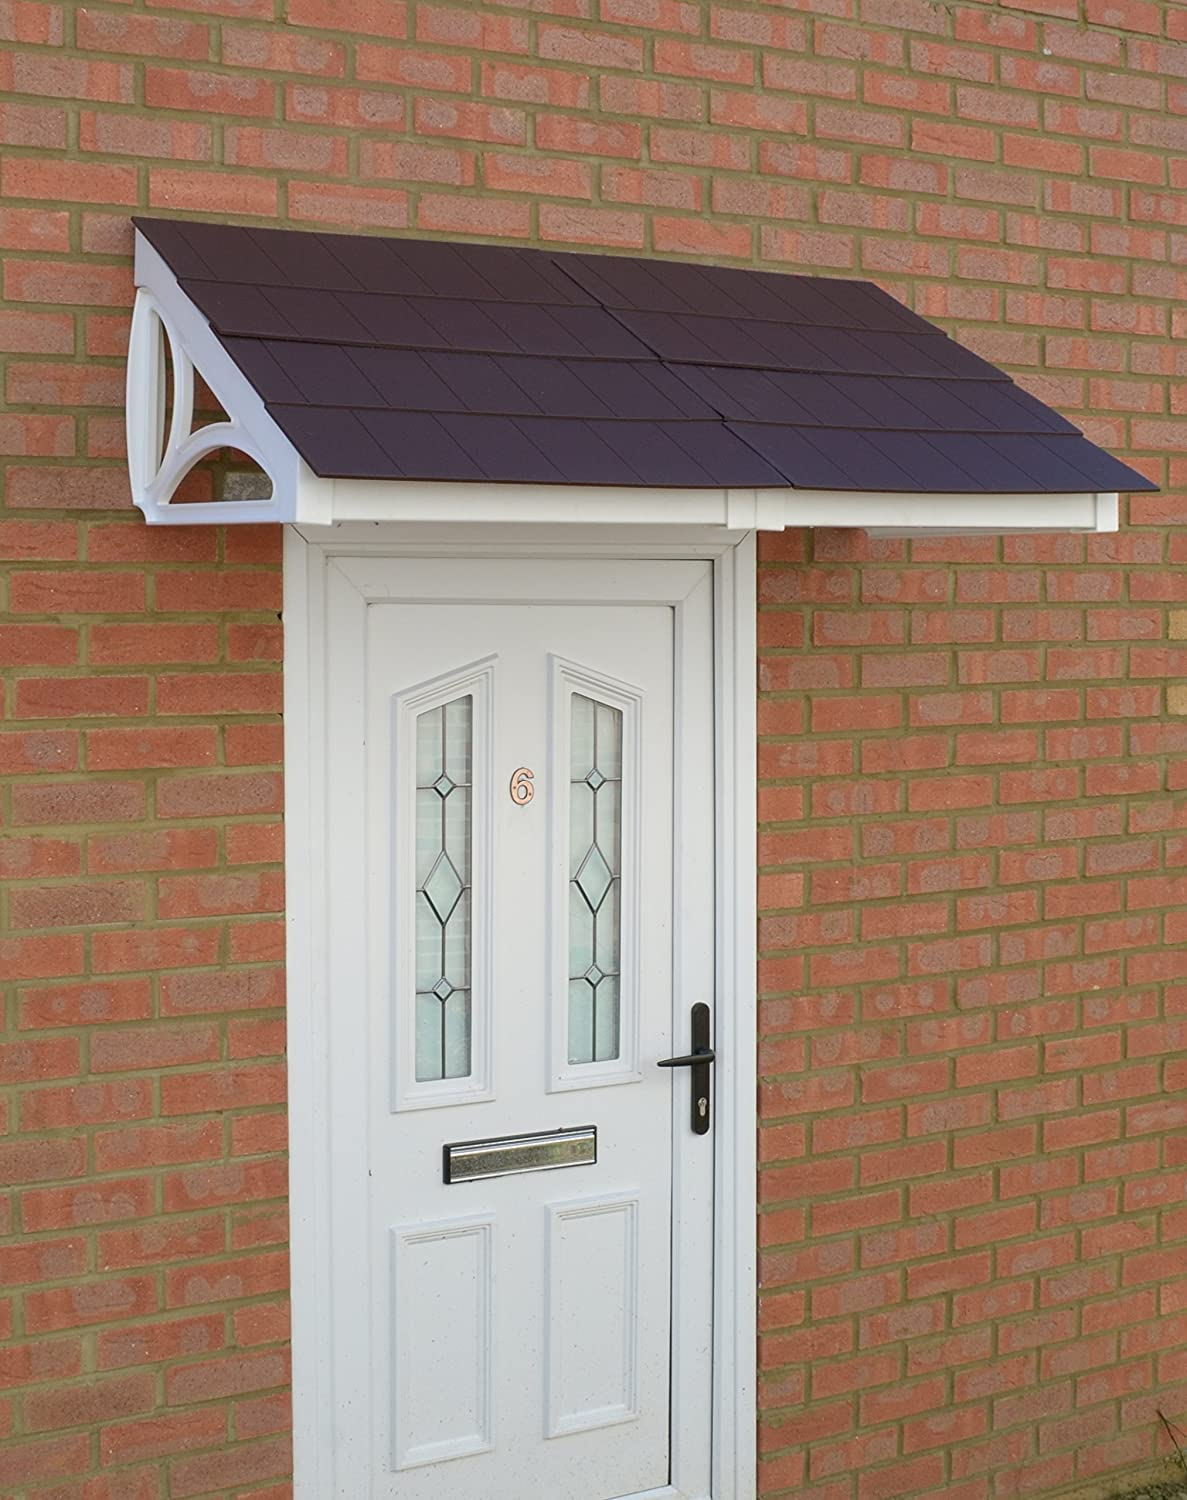 High Quality All Weather Stability Black 1.4m Door Canopy CP0007